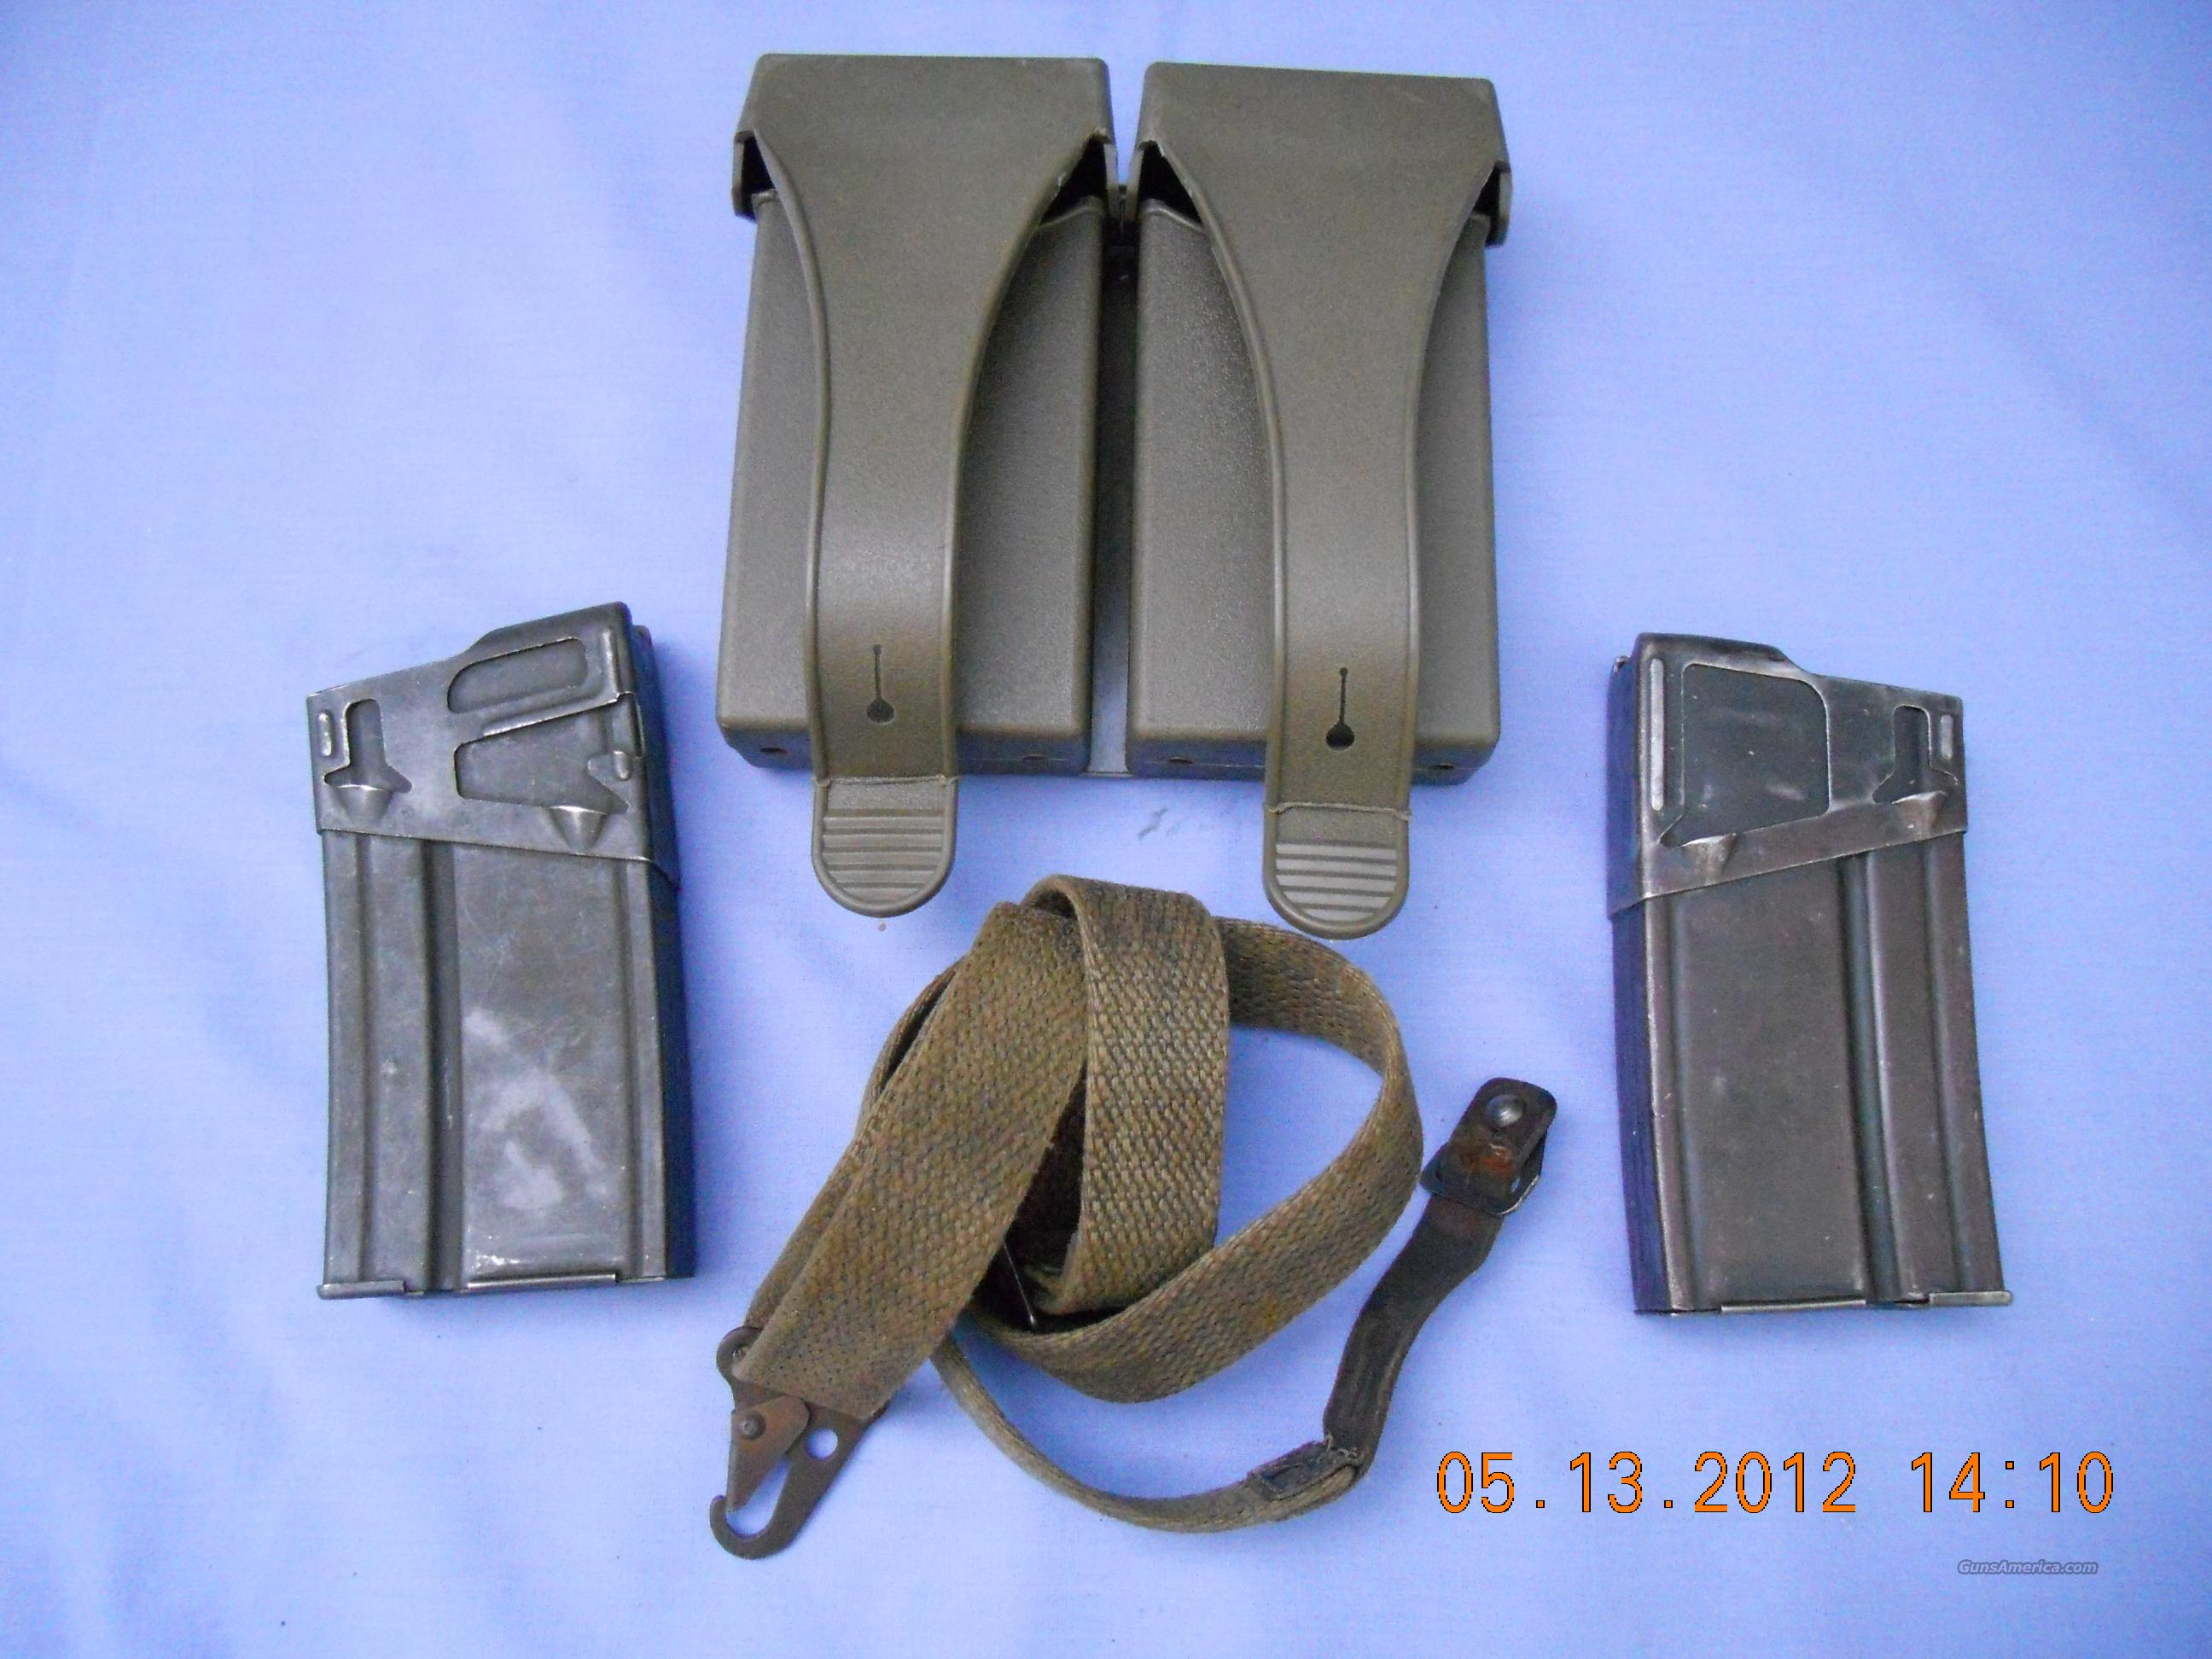 CETME  MAG, 2-PACK AND SLING  Non-Guns > Magazines & Clips > Rifle Magazines > HK/CETME